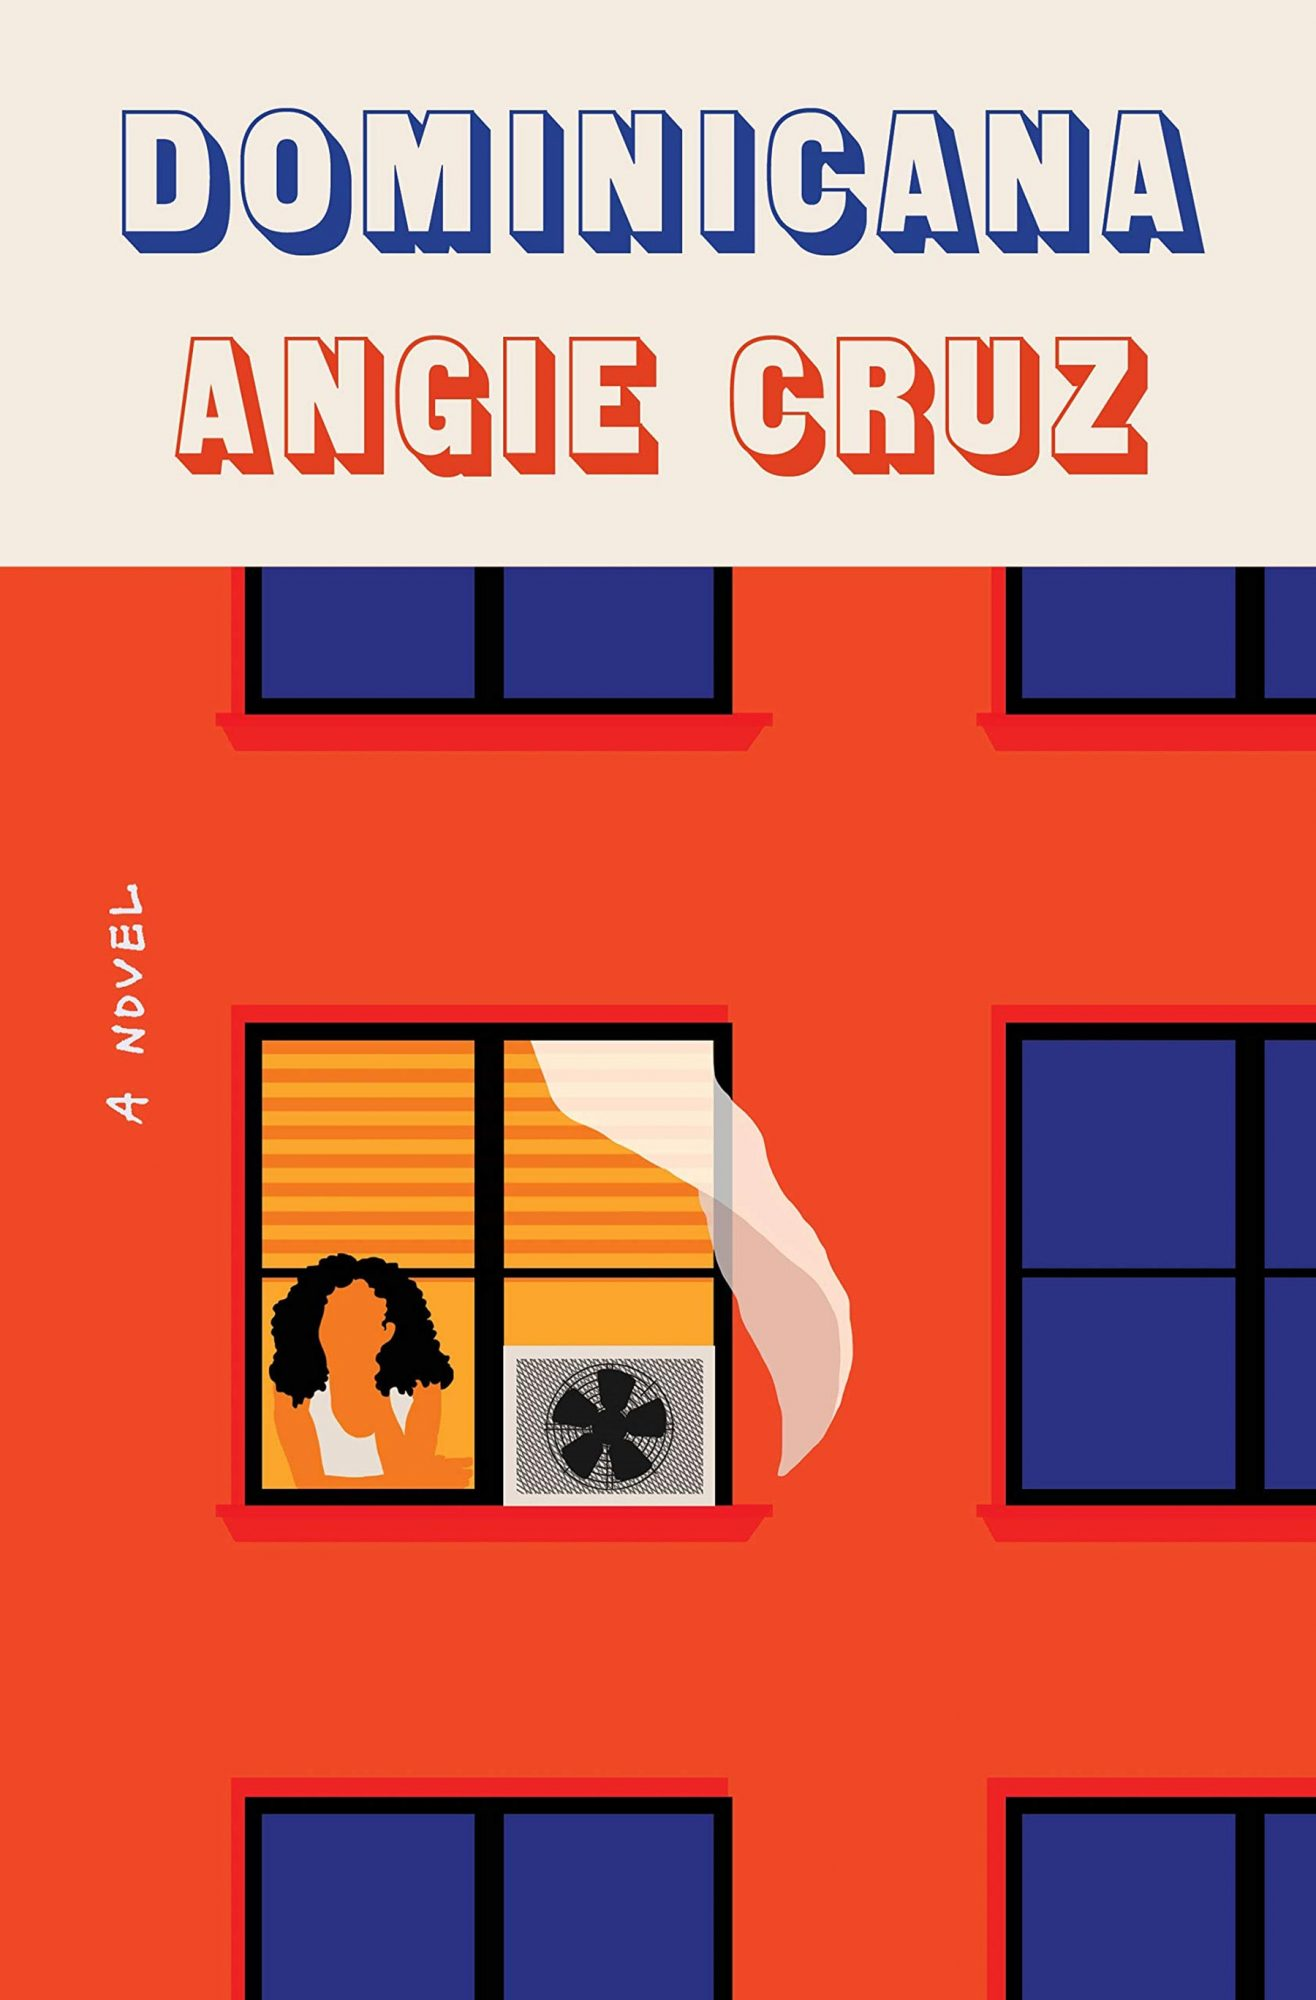 Dominicana by Angie CruzPublisher: Flatiron Books